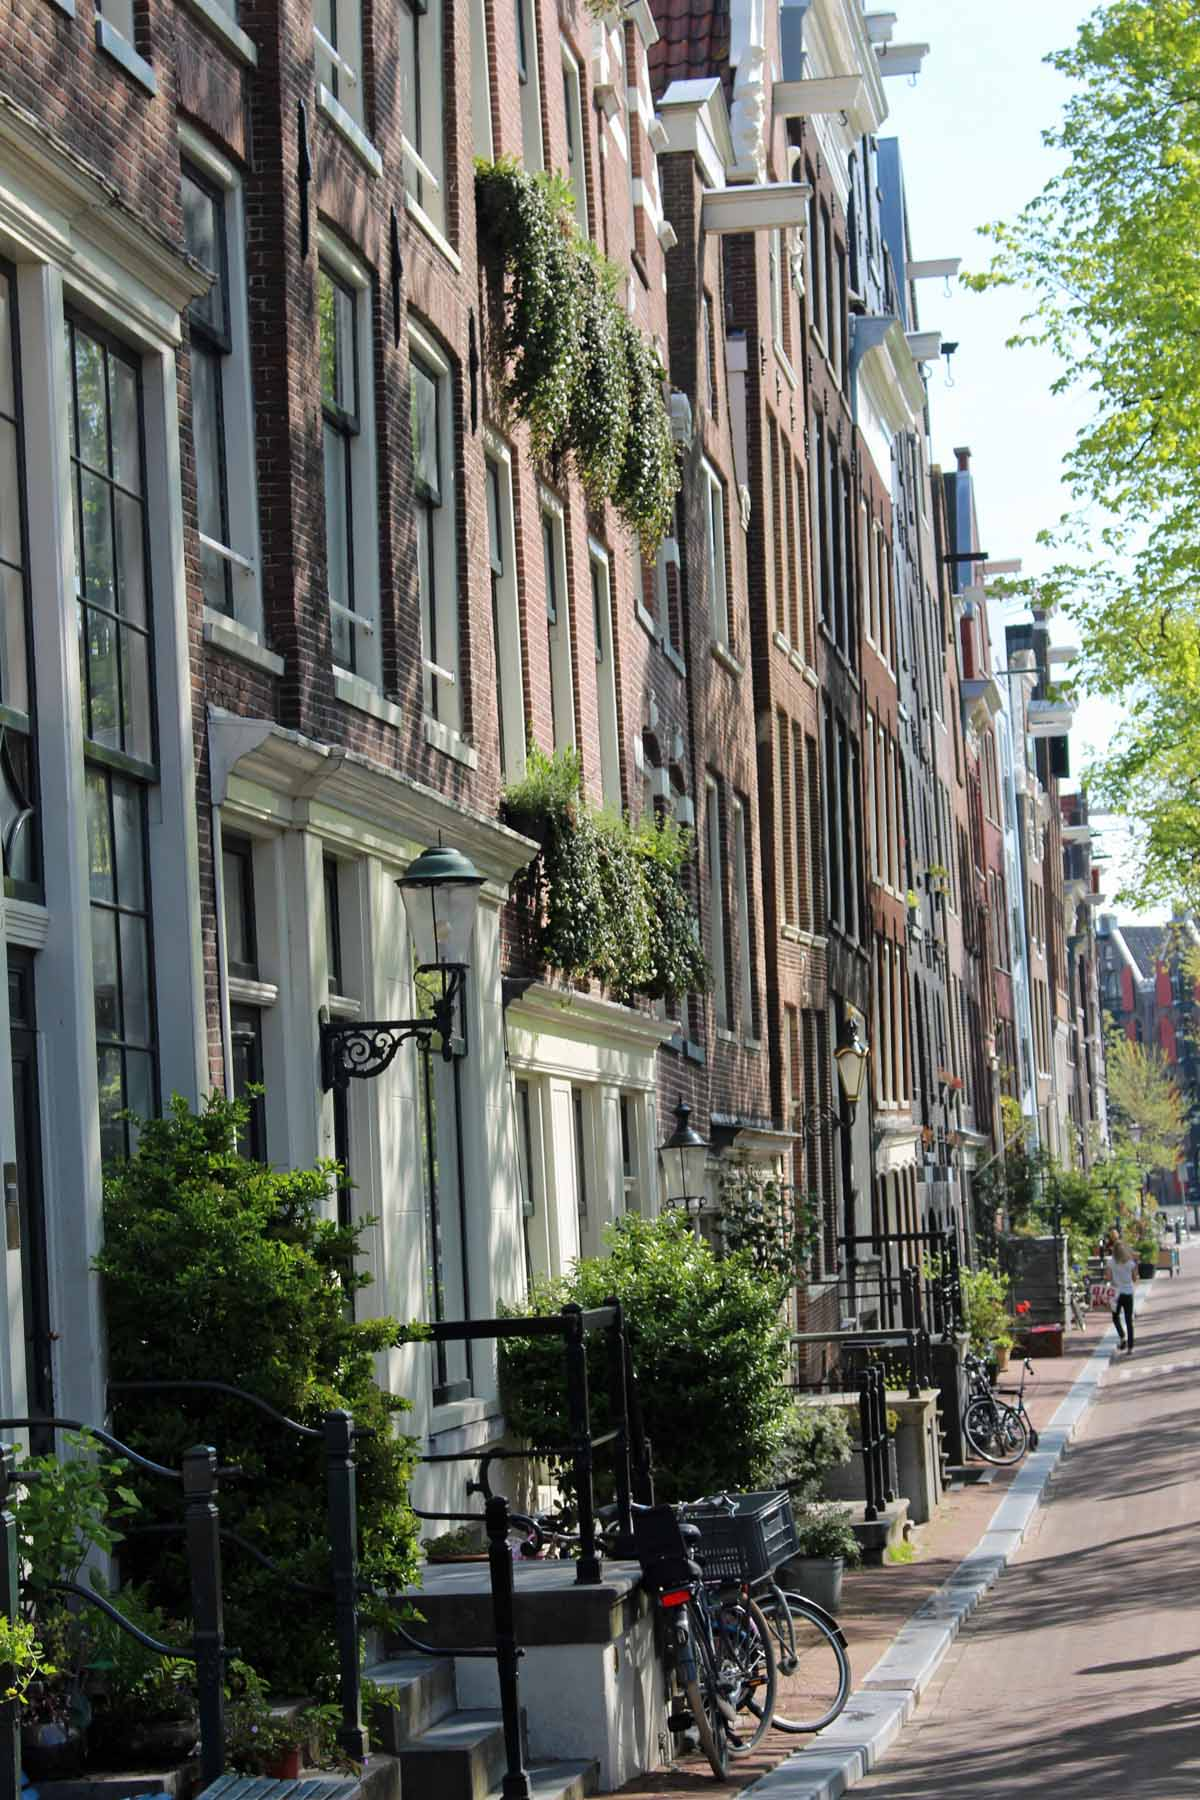 Amsterdam, typical houses, Jordaan district